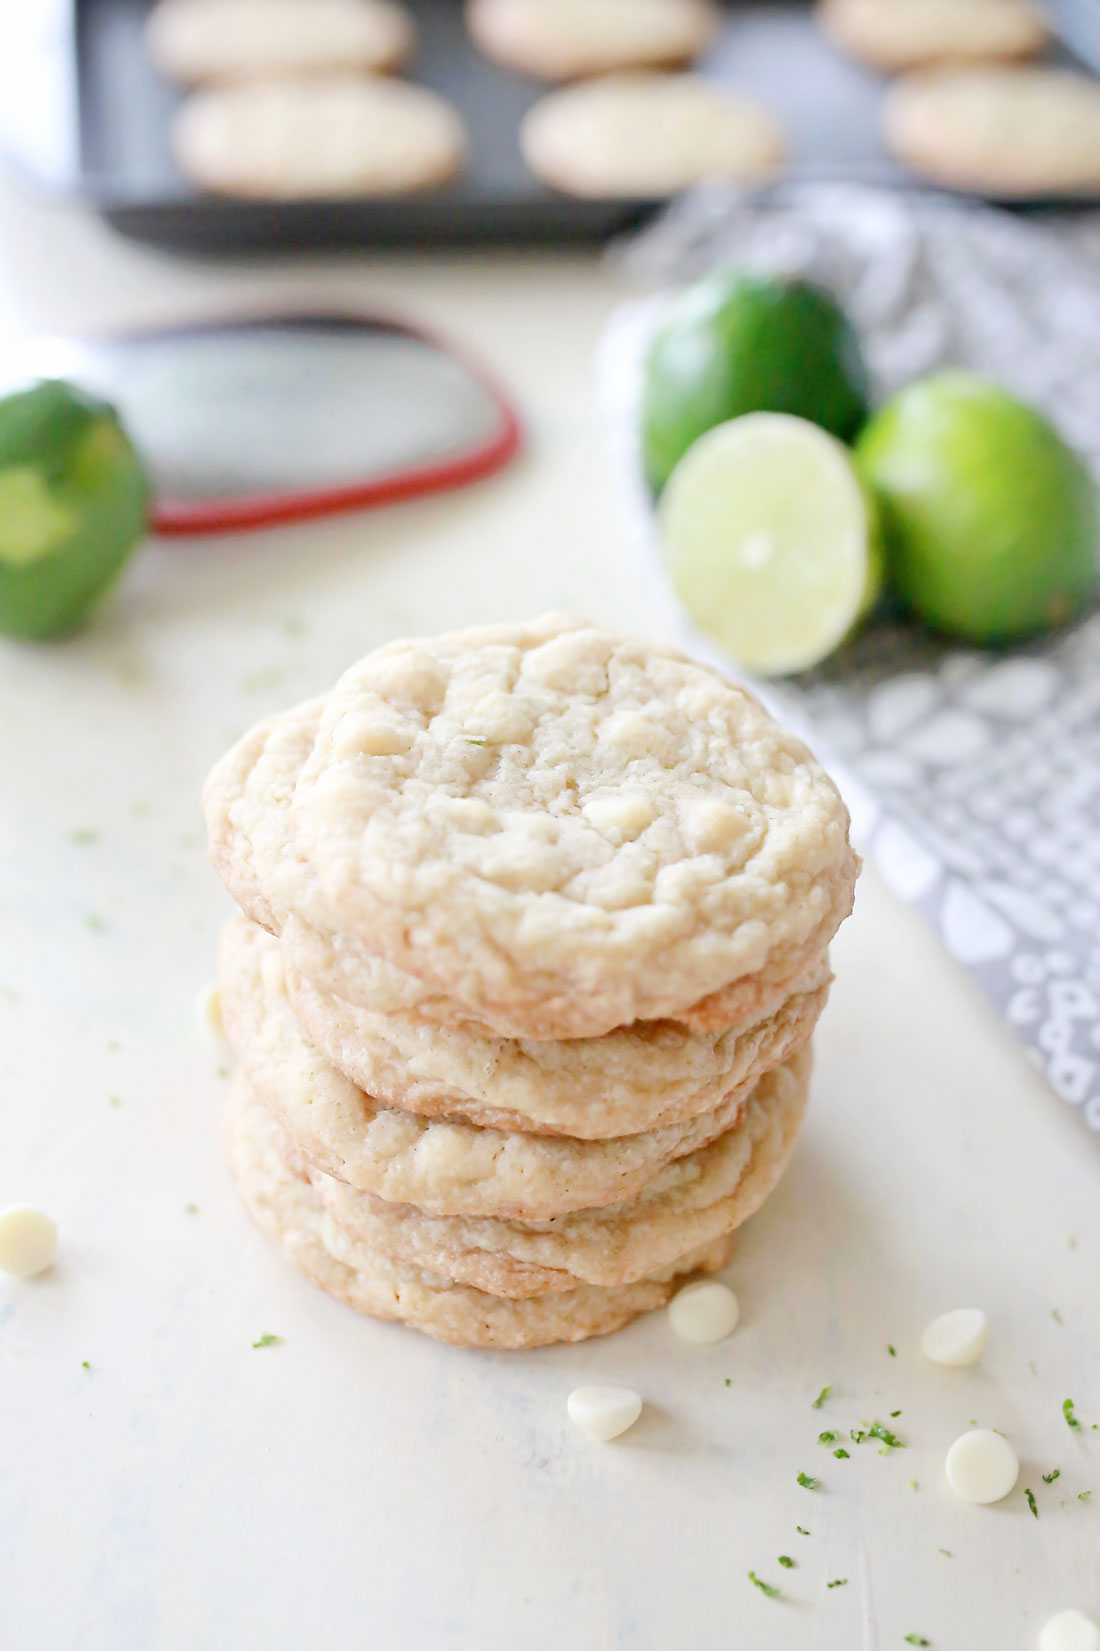 Whit Chocolate Lime Cookies- aka the best and easiest cookies int he history of ever! These were amazing cookies!